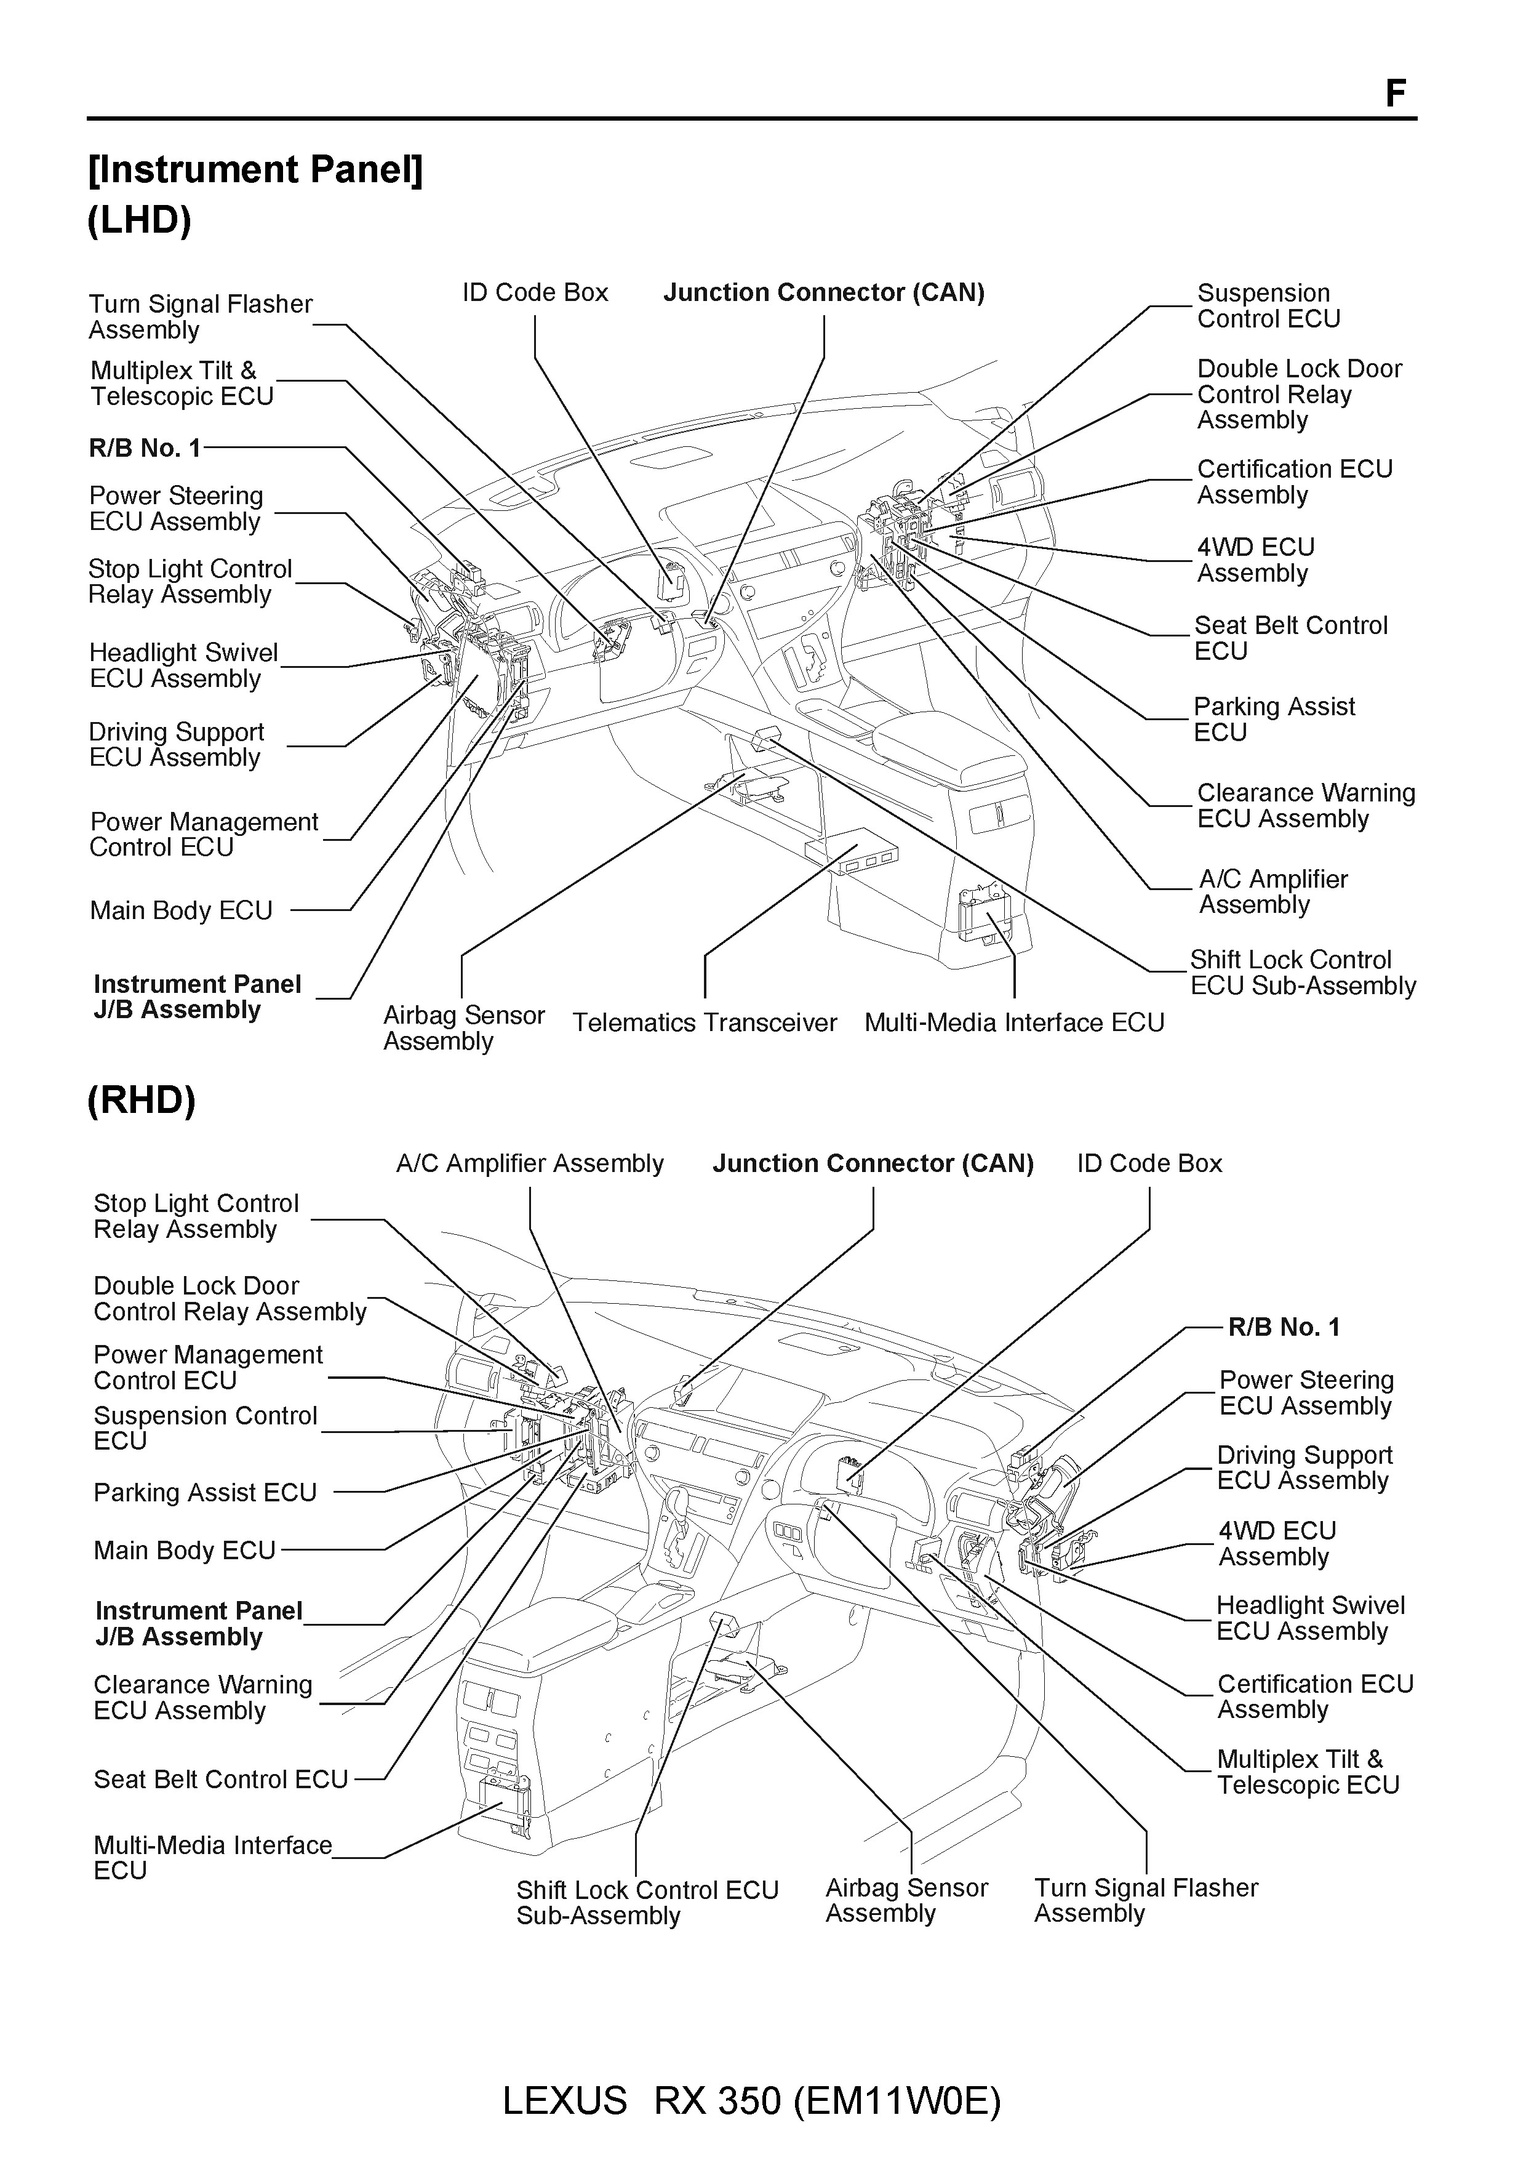 2010 Lexus RX350, OEM Electrical Wiring Diagram (PDF